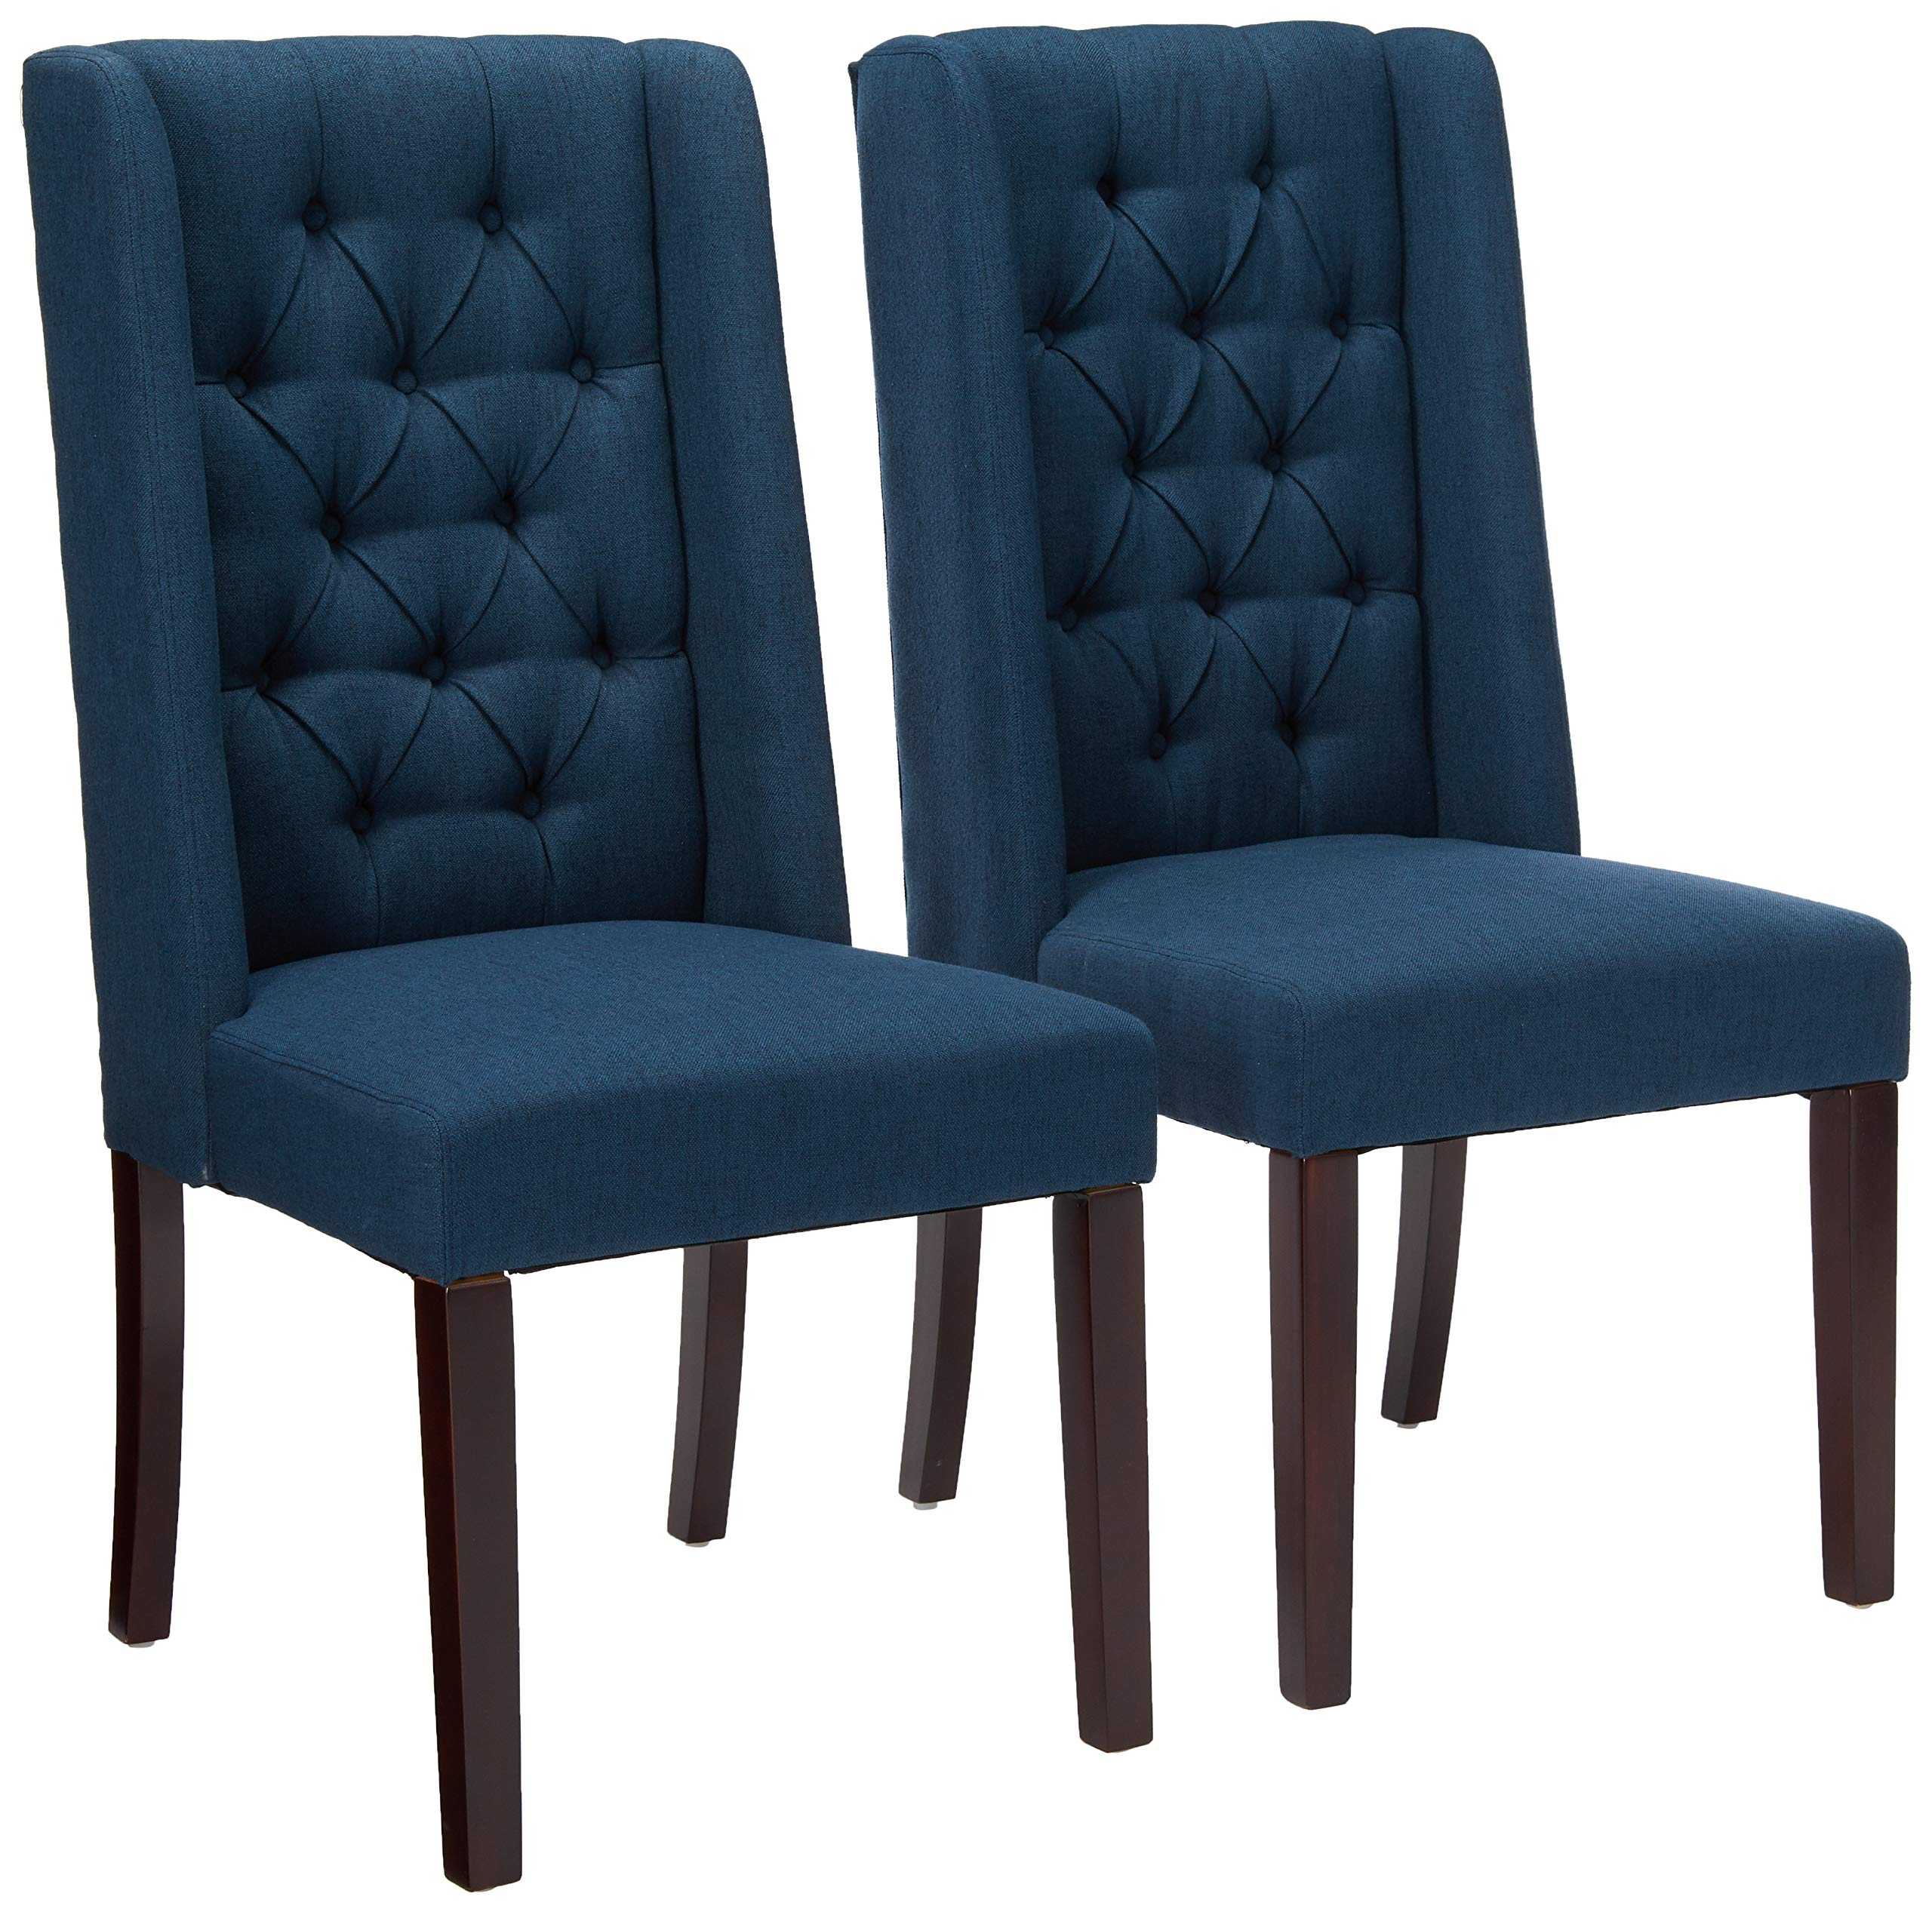 Amazon Com Christopher Knight Home Blythe Tufted Fabric Dining Chairs 302442 2 Pcs Set Navy Blue Brown Chairs